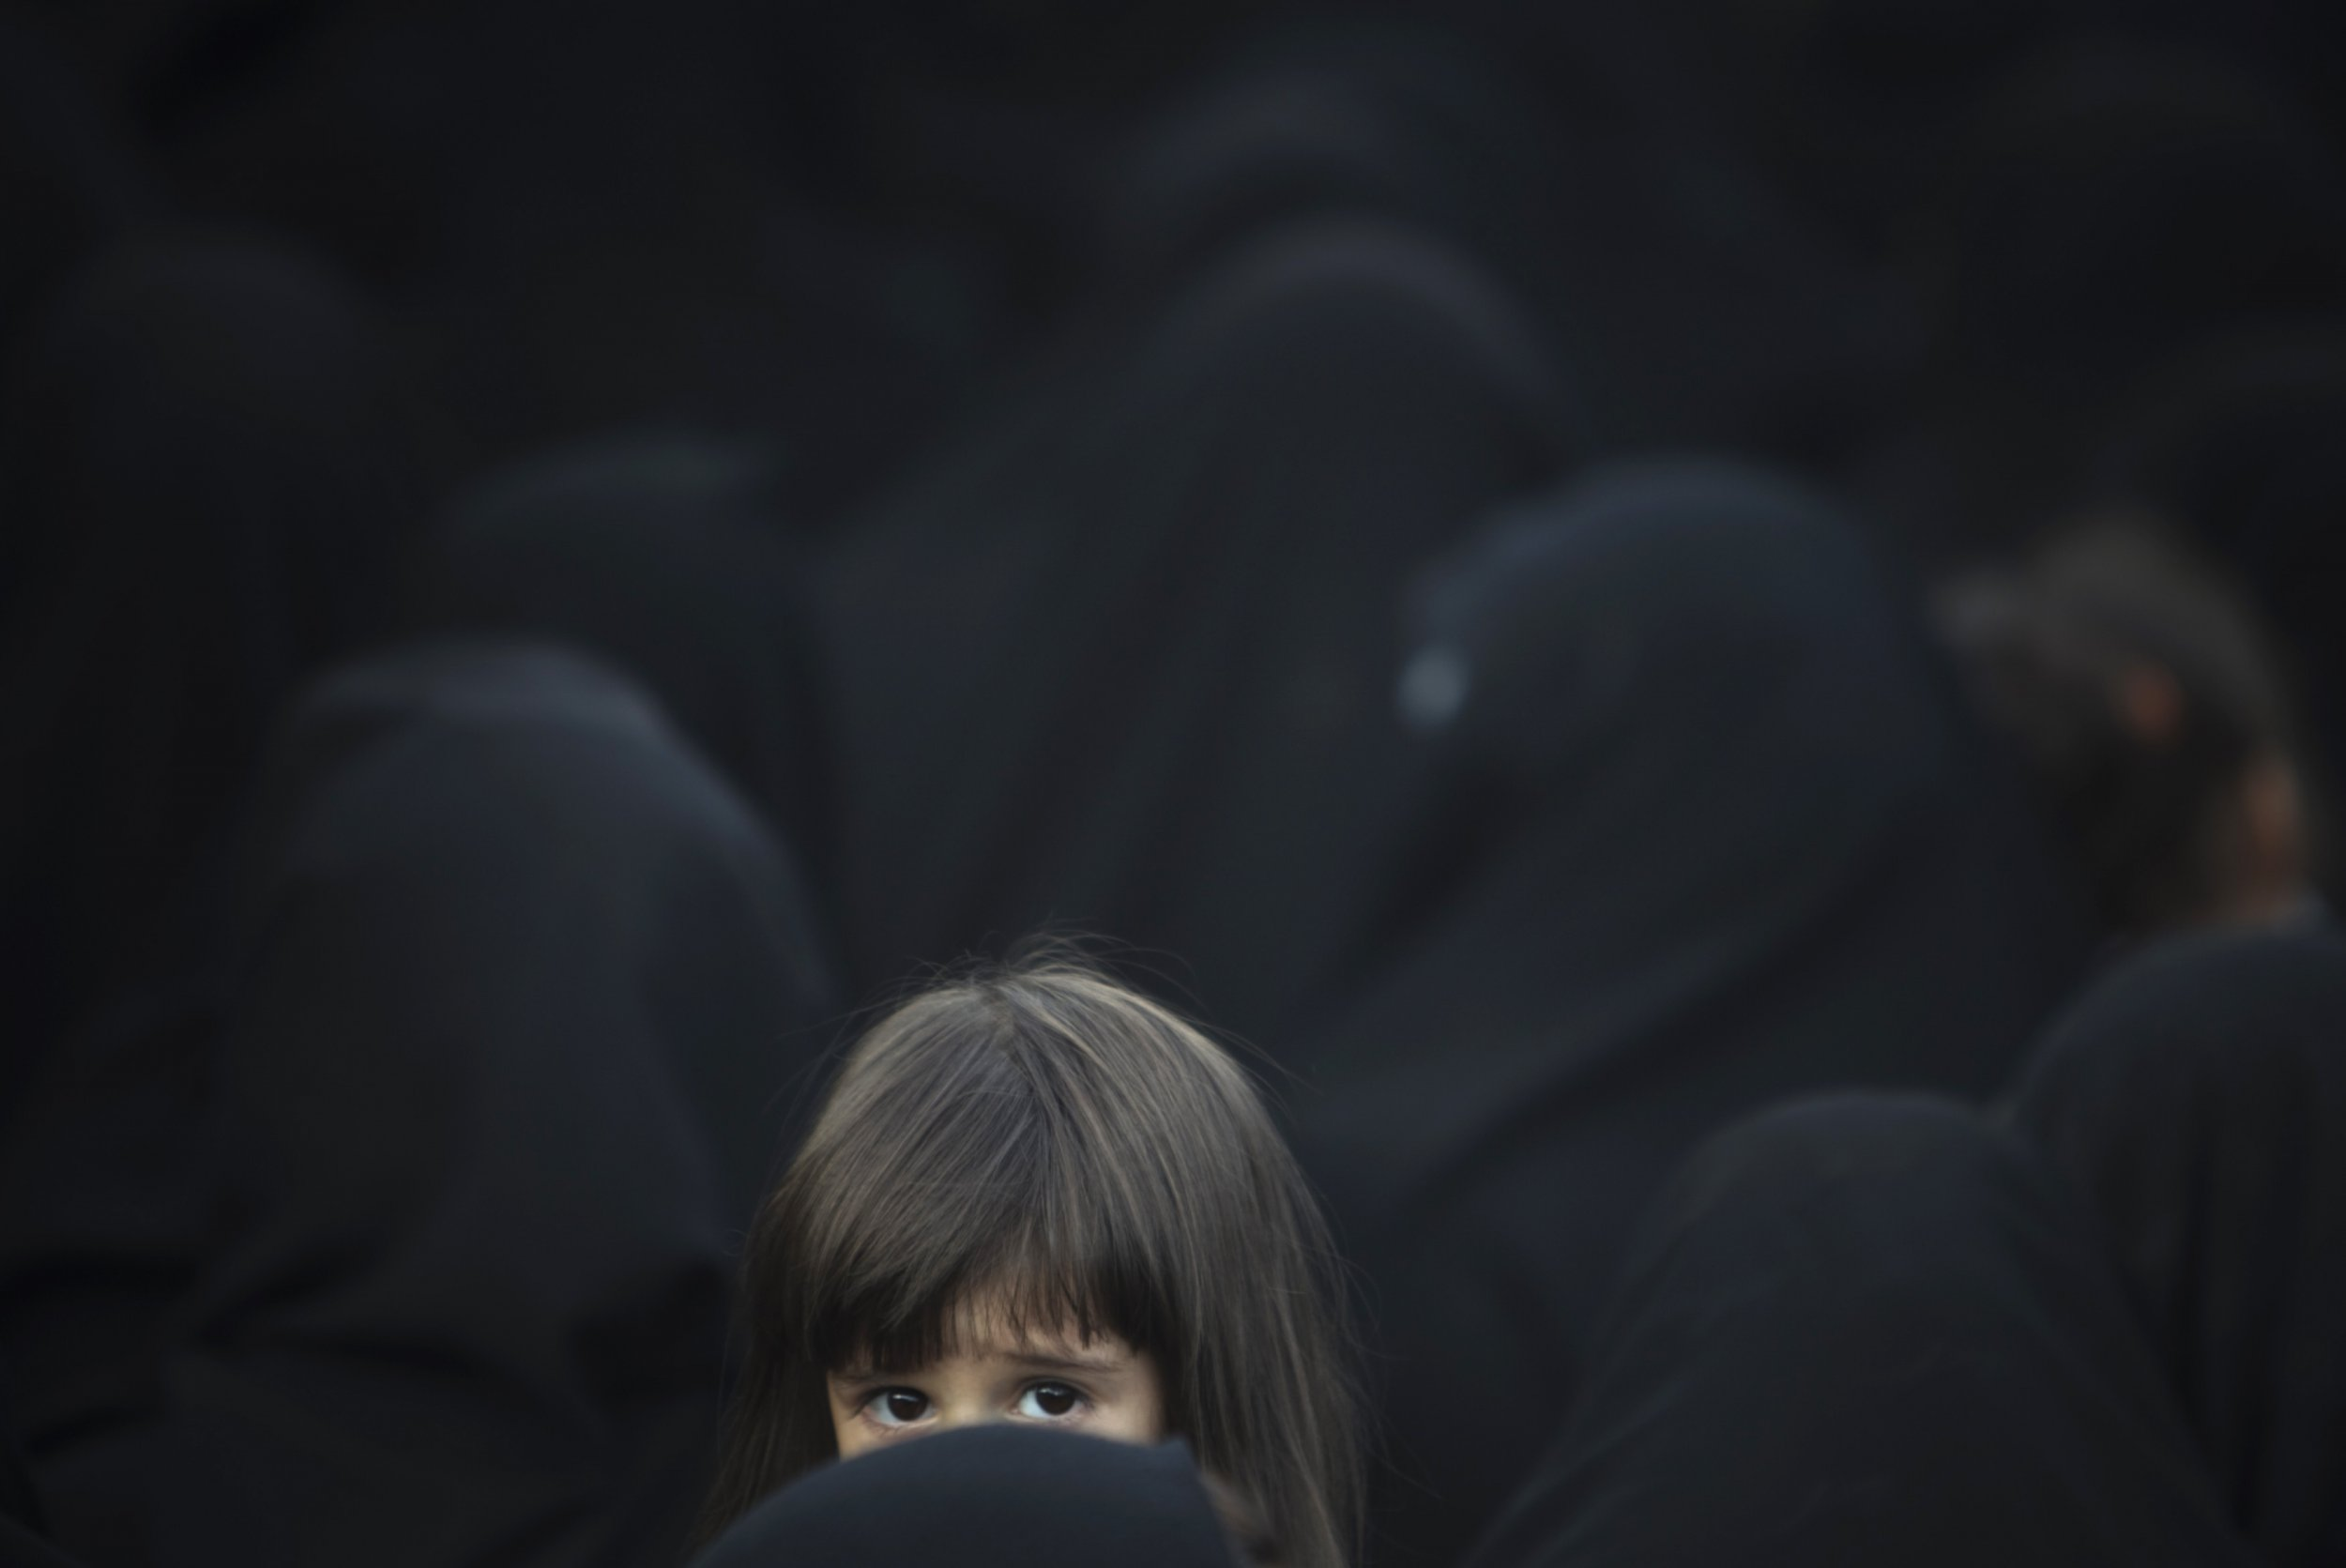 UN Condemns Iran and Calls for Law Reforms on Young Girls